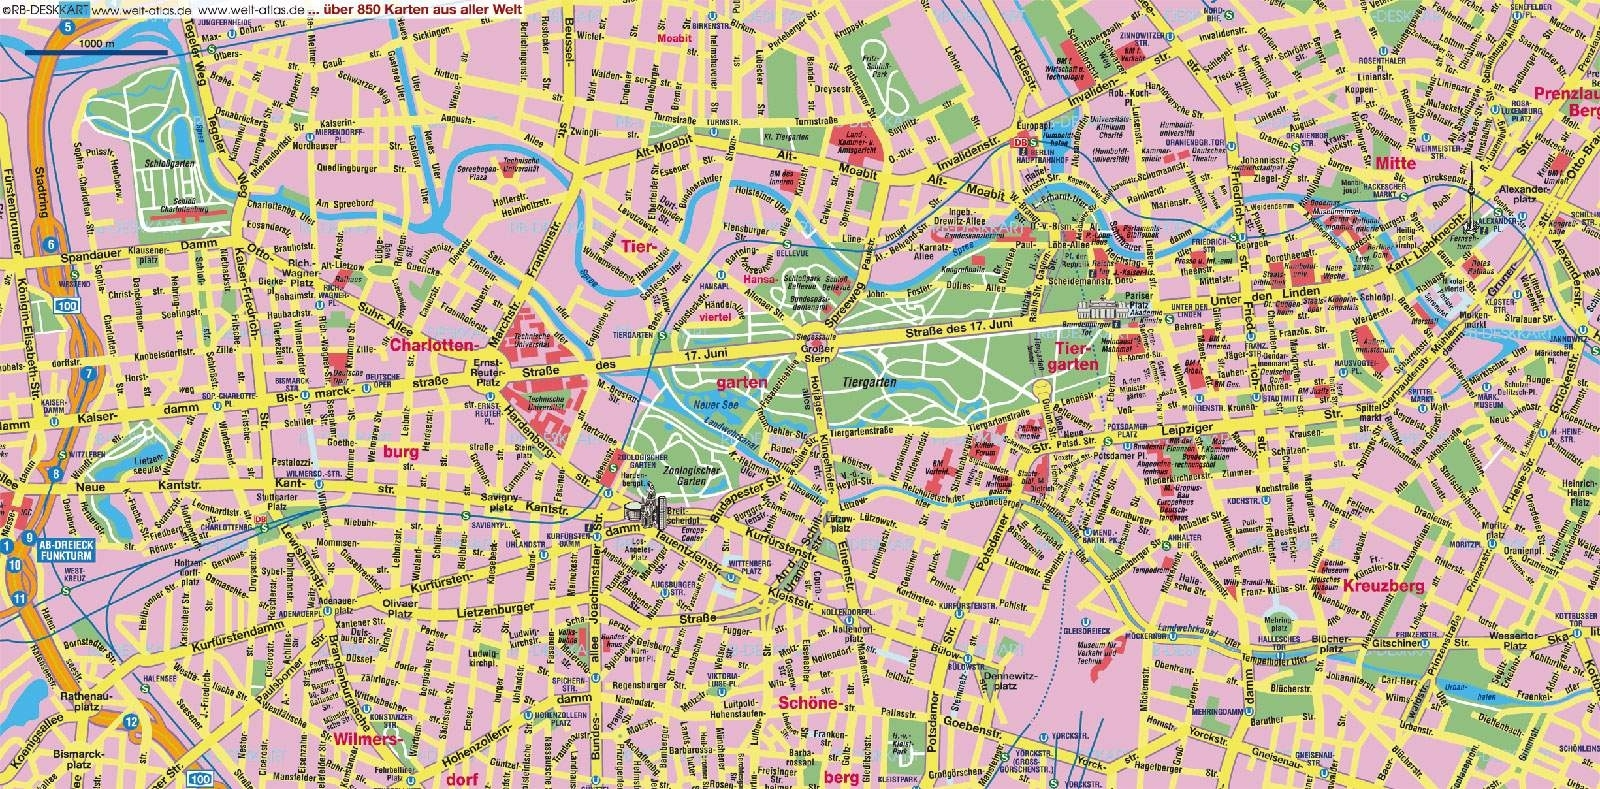 Large Berlin Maps For Free Download And Print   High with regard to Stuttgart City Centre Map